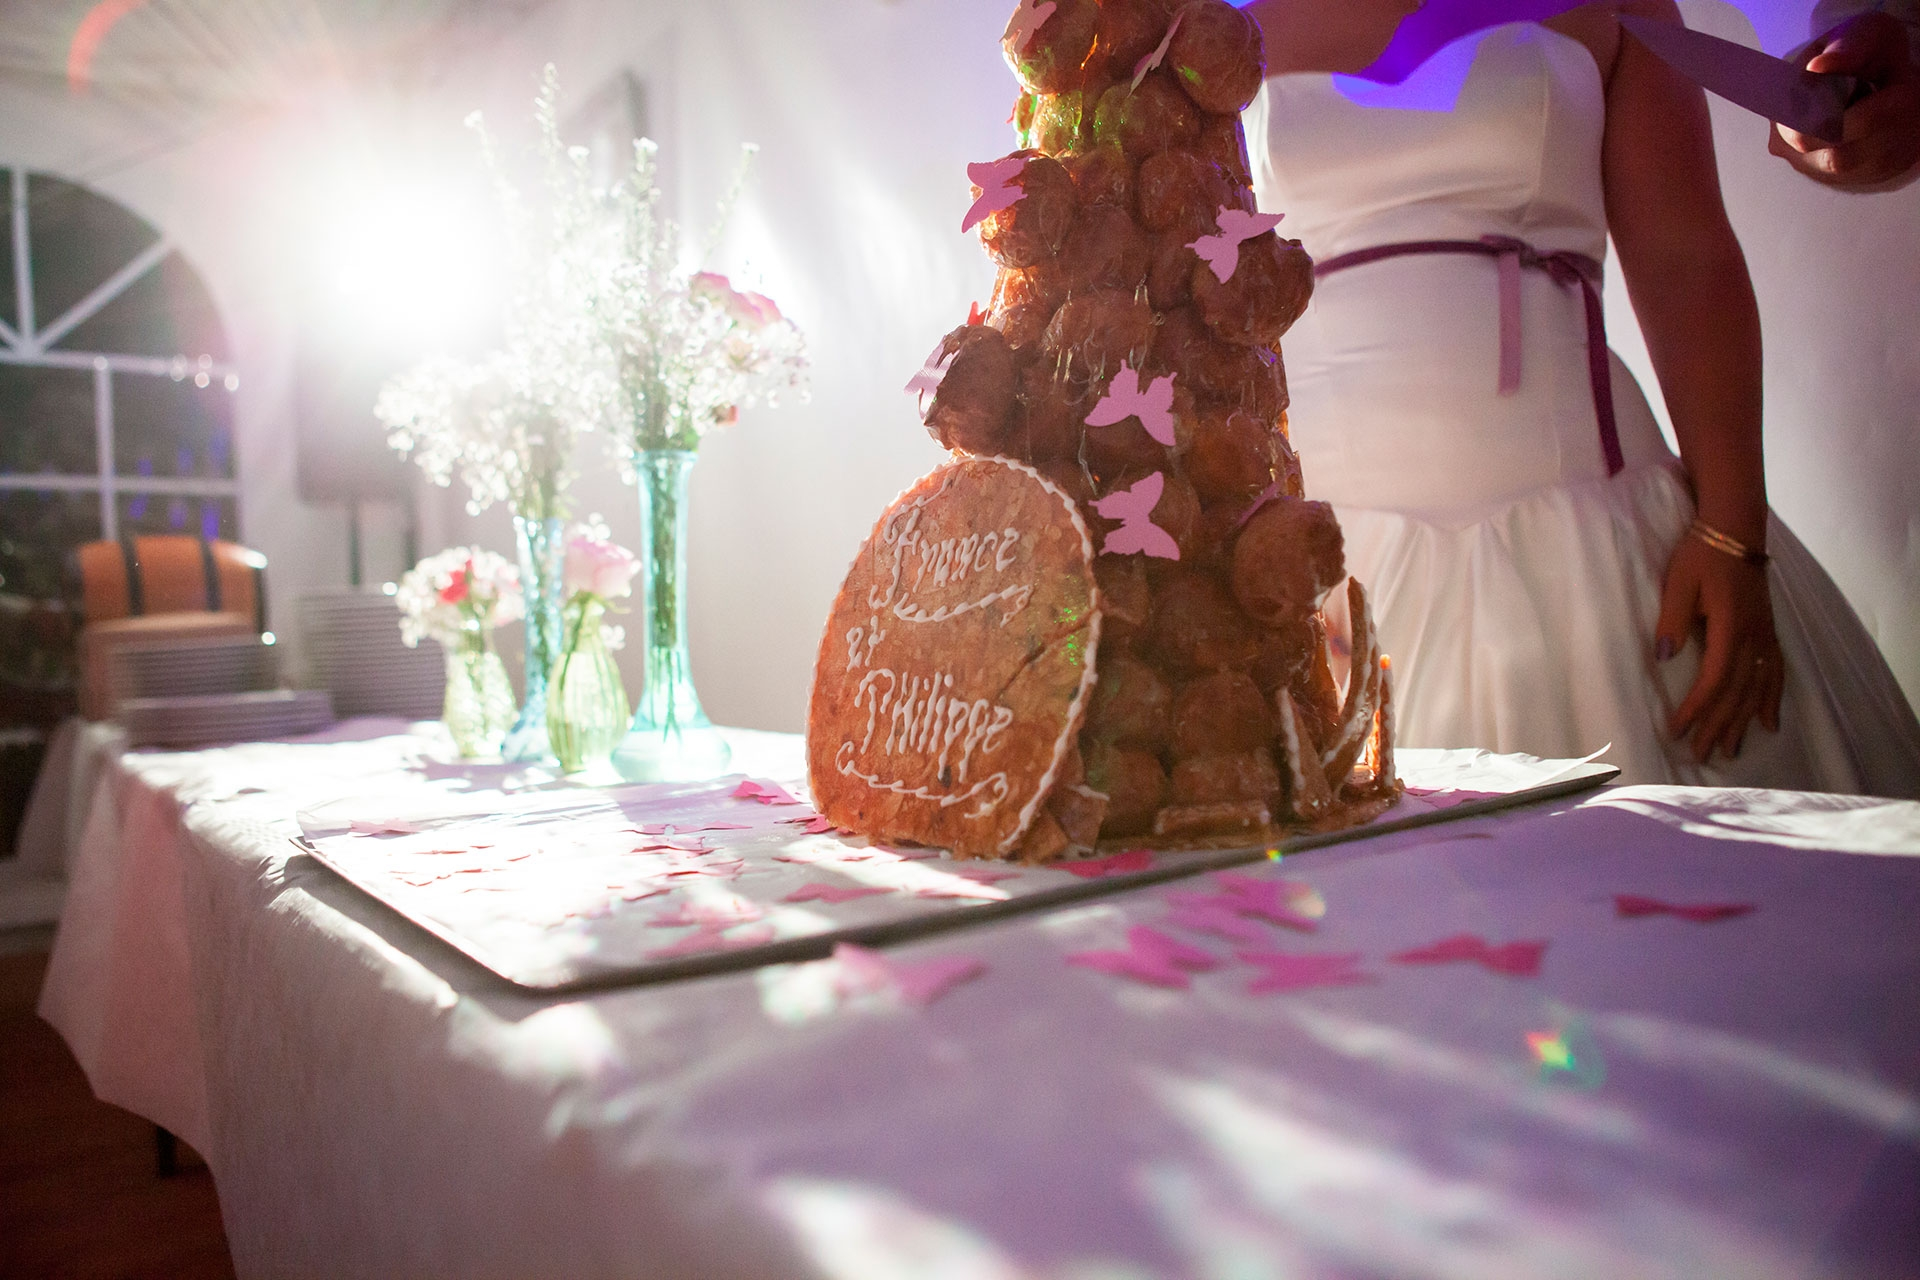 particuliers-evenements-mariages-oui-france&philippe-81